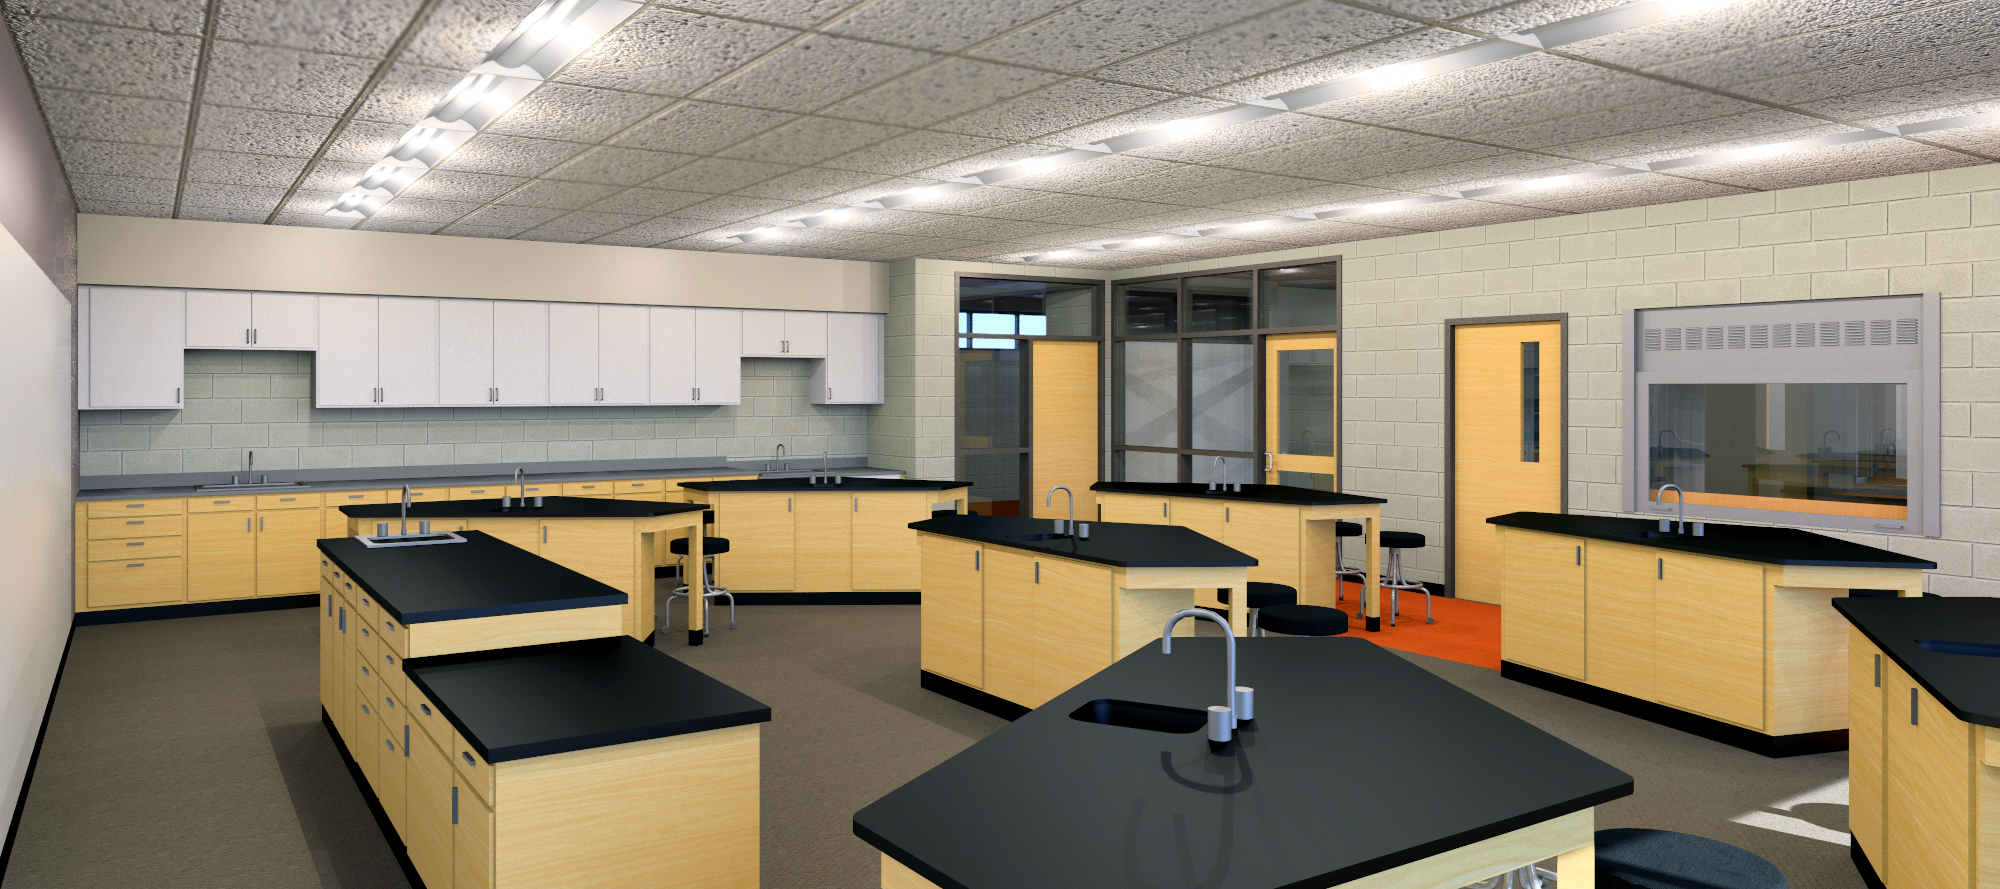 High School Classroom Interior Design ~ College classroom design images elementary school